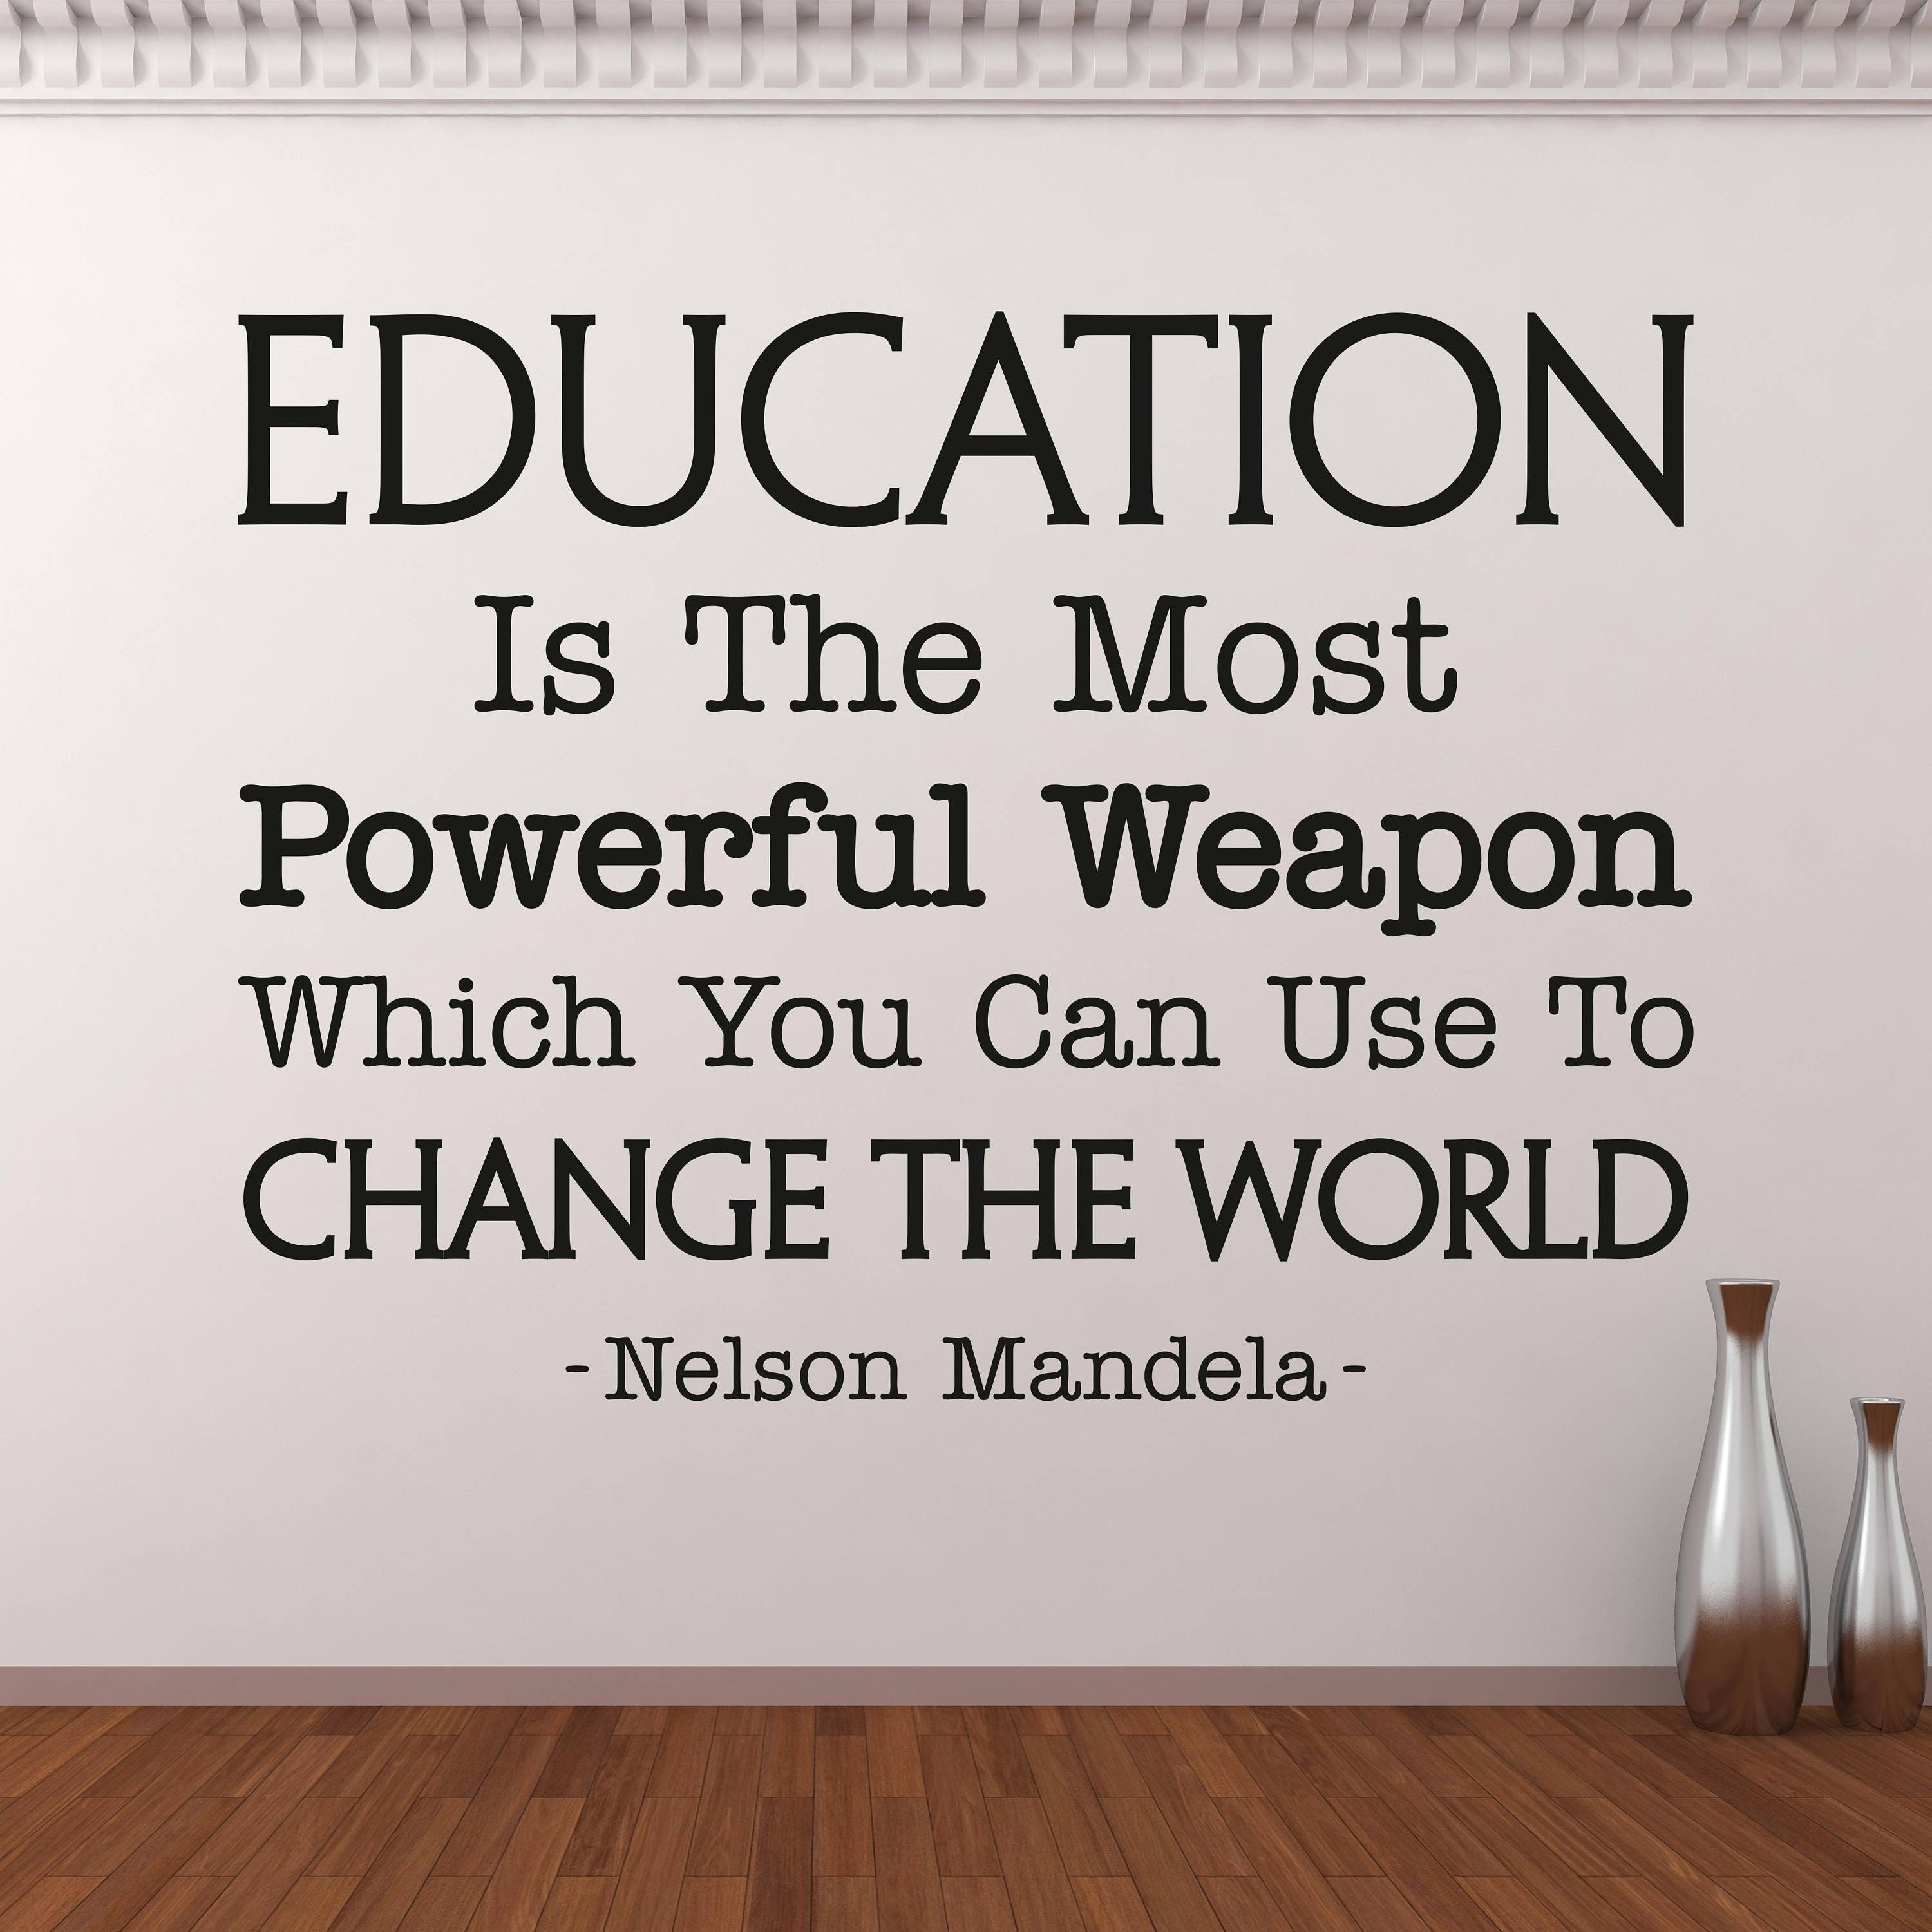 Quotes Children Education: Education Is The Most Powerful Weapon Wall Decal Inspirational